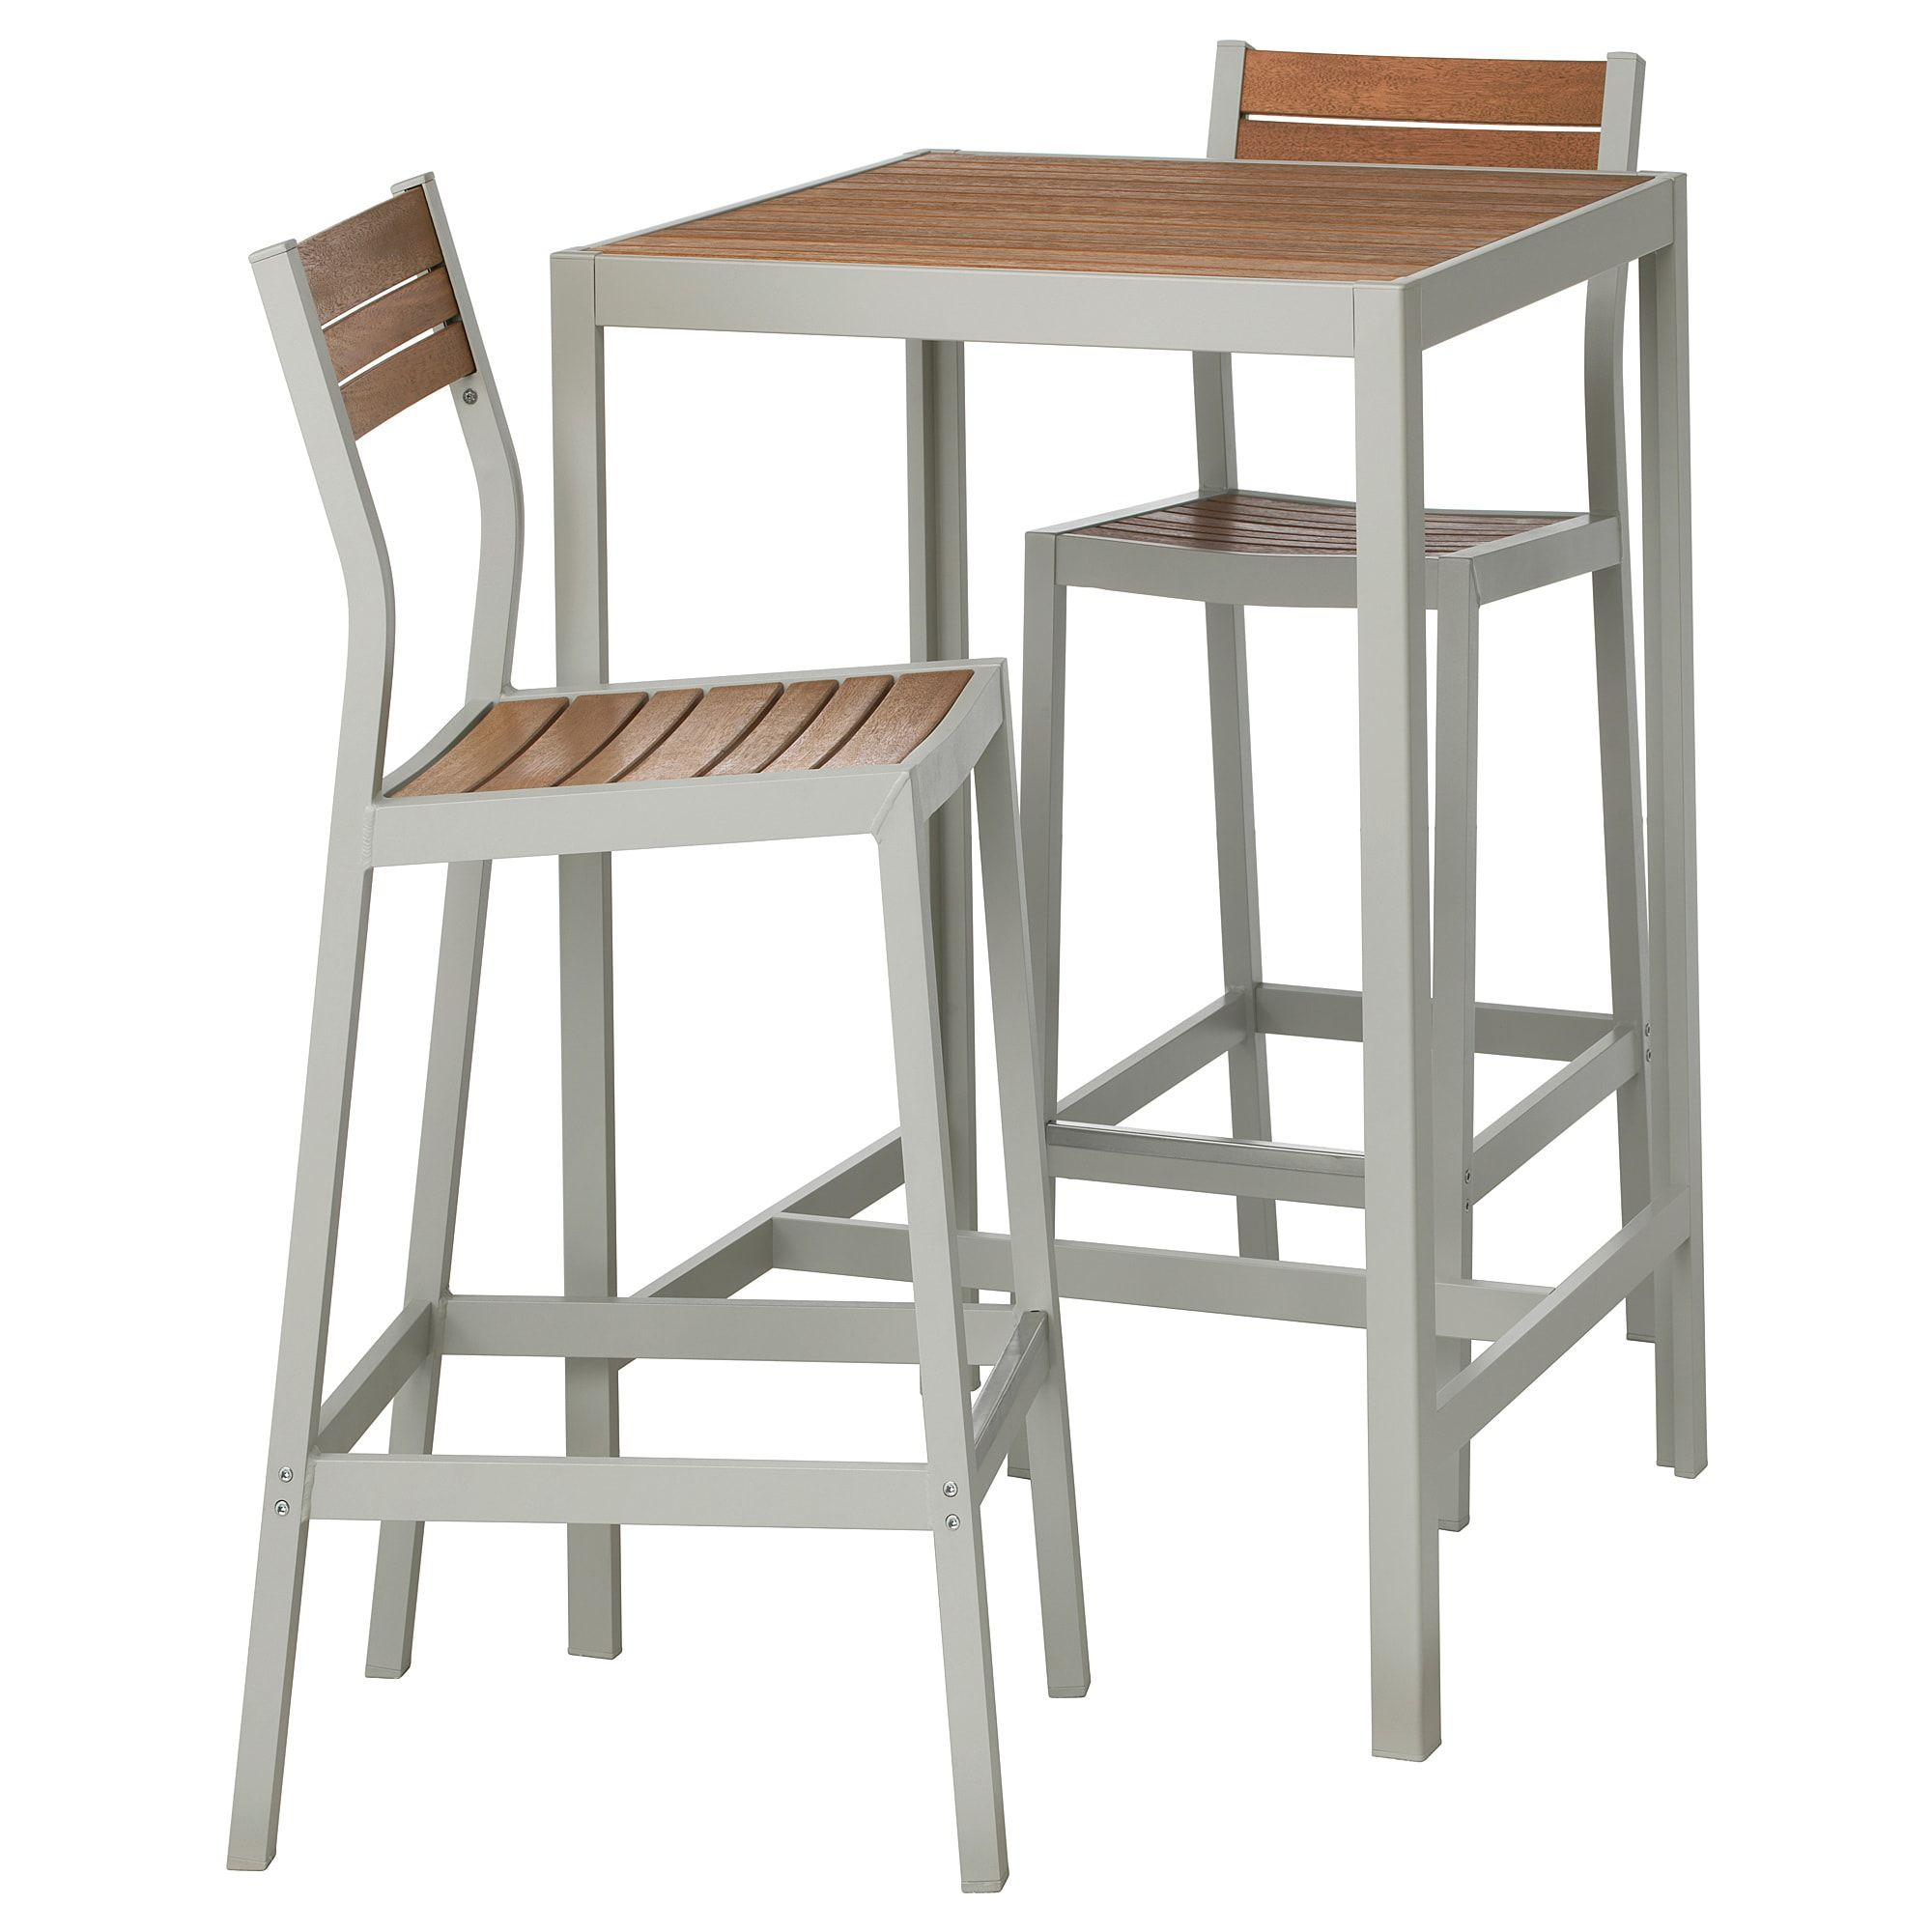 Sjalland Bar Table And 2 Bar Stools Outdoor Light Brown Light